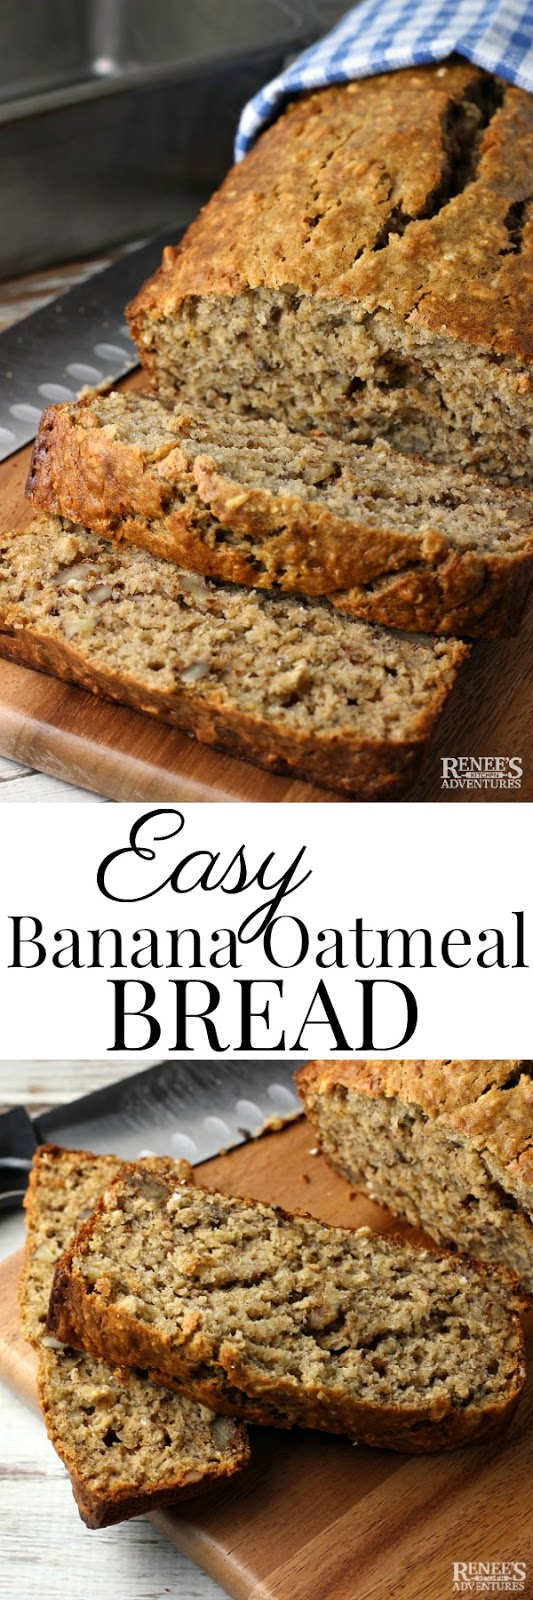 Easy banana oatmeal bread renees kitchen adventures dont forget to pin easy banana oatmeal bread to your pinterest boards forumfinder